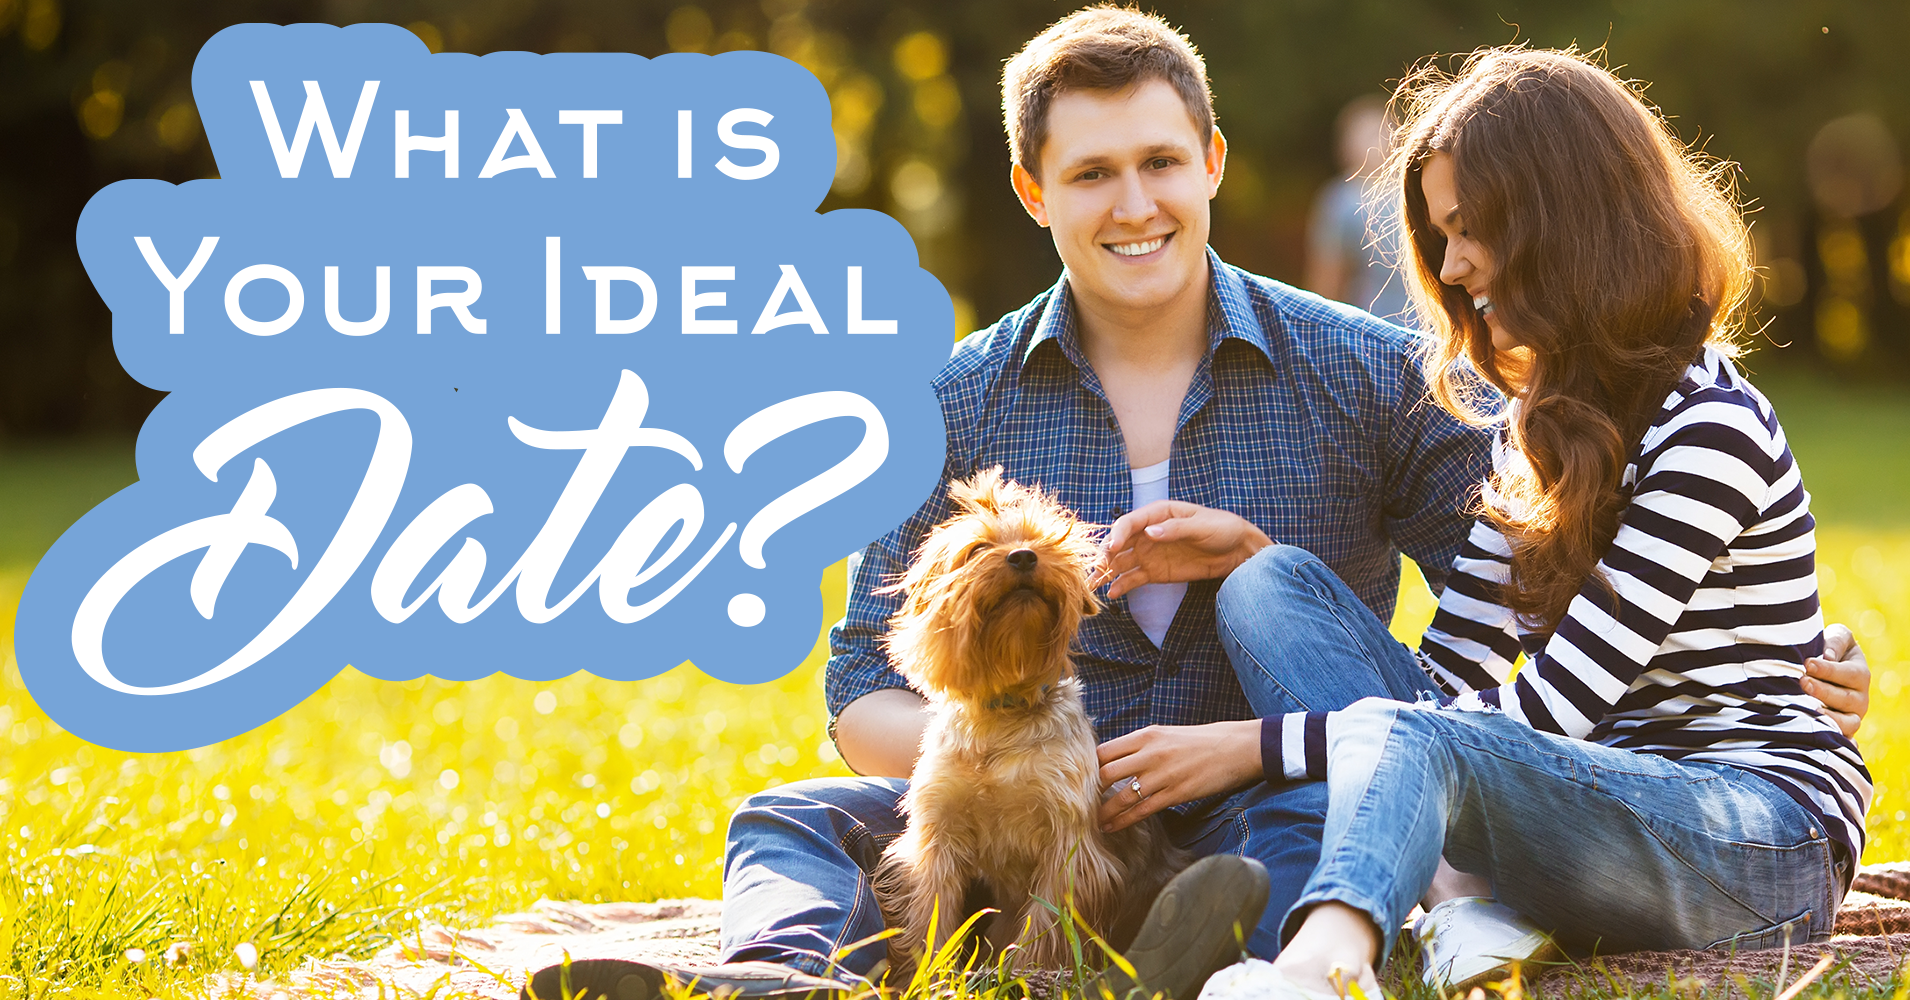 what is your ideal date  - quiz